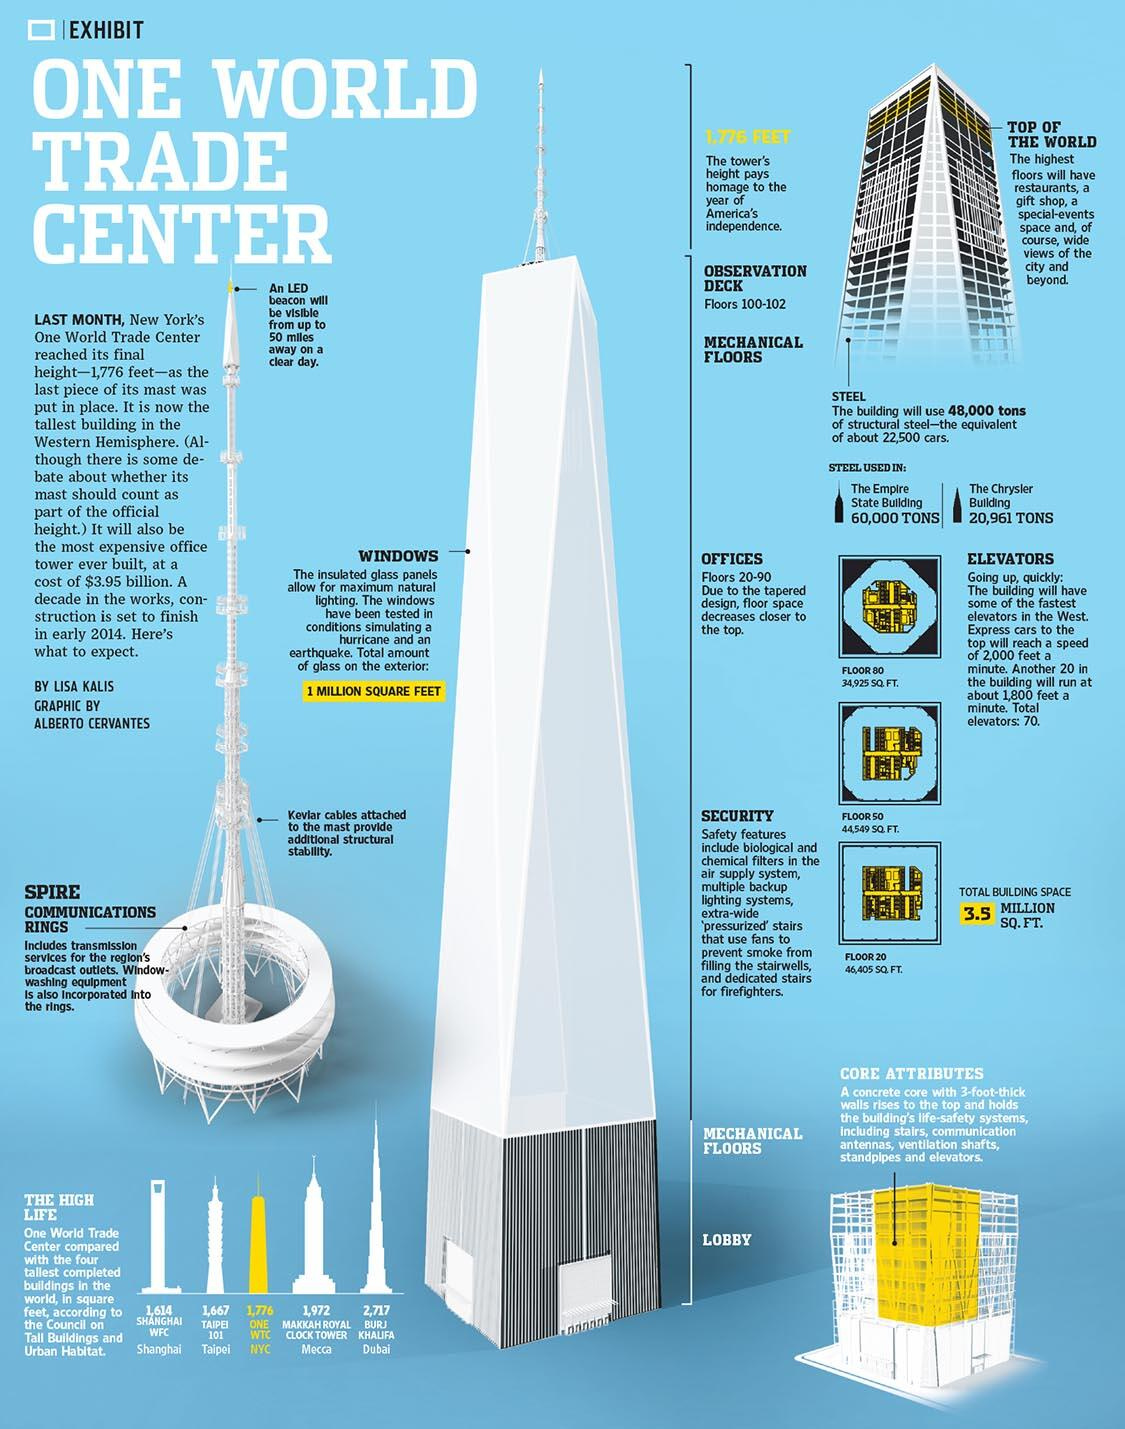 Wsj Graphics On Twitter Quot One World Trade Center